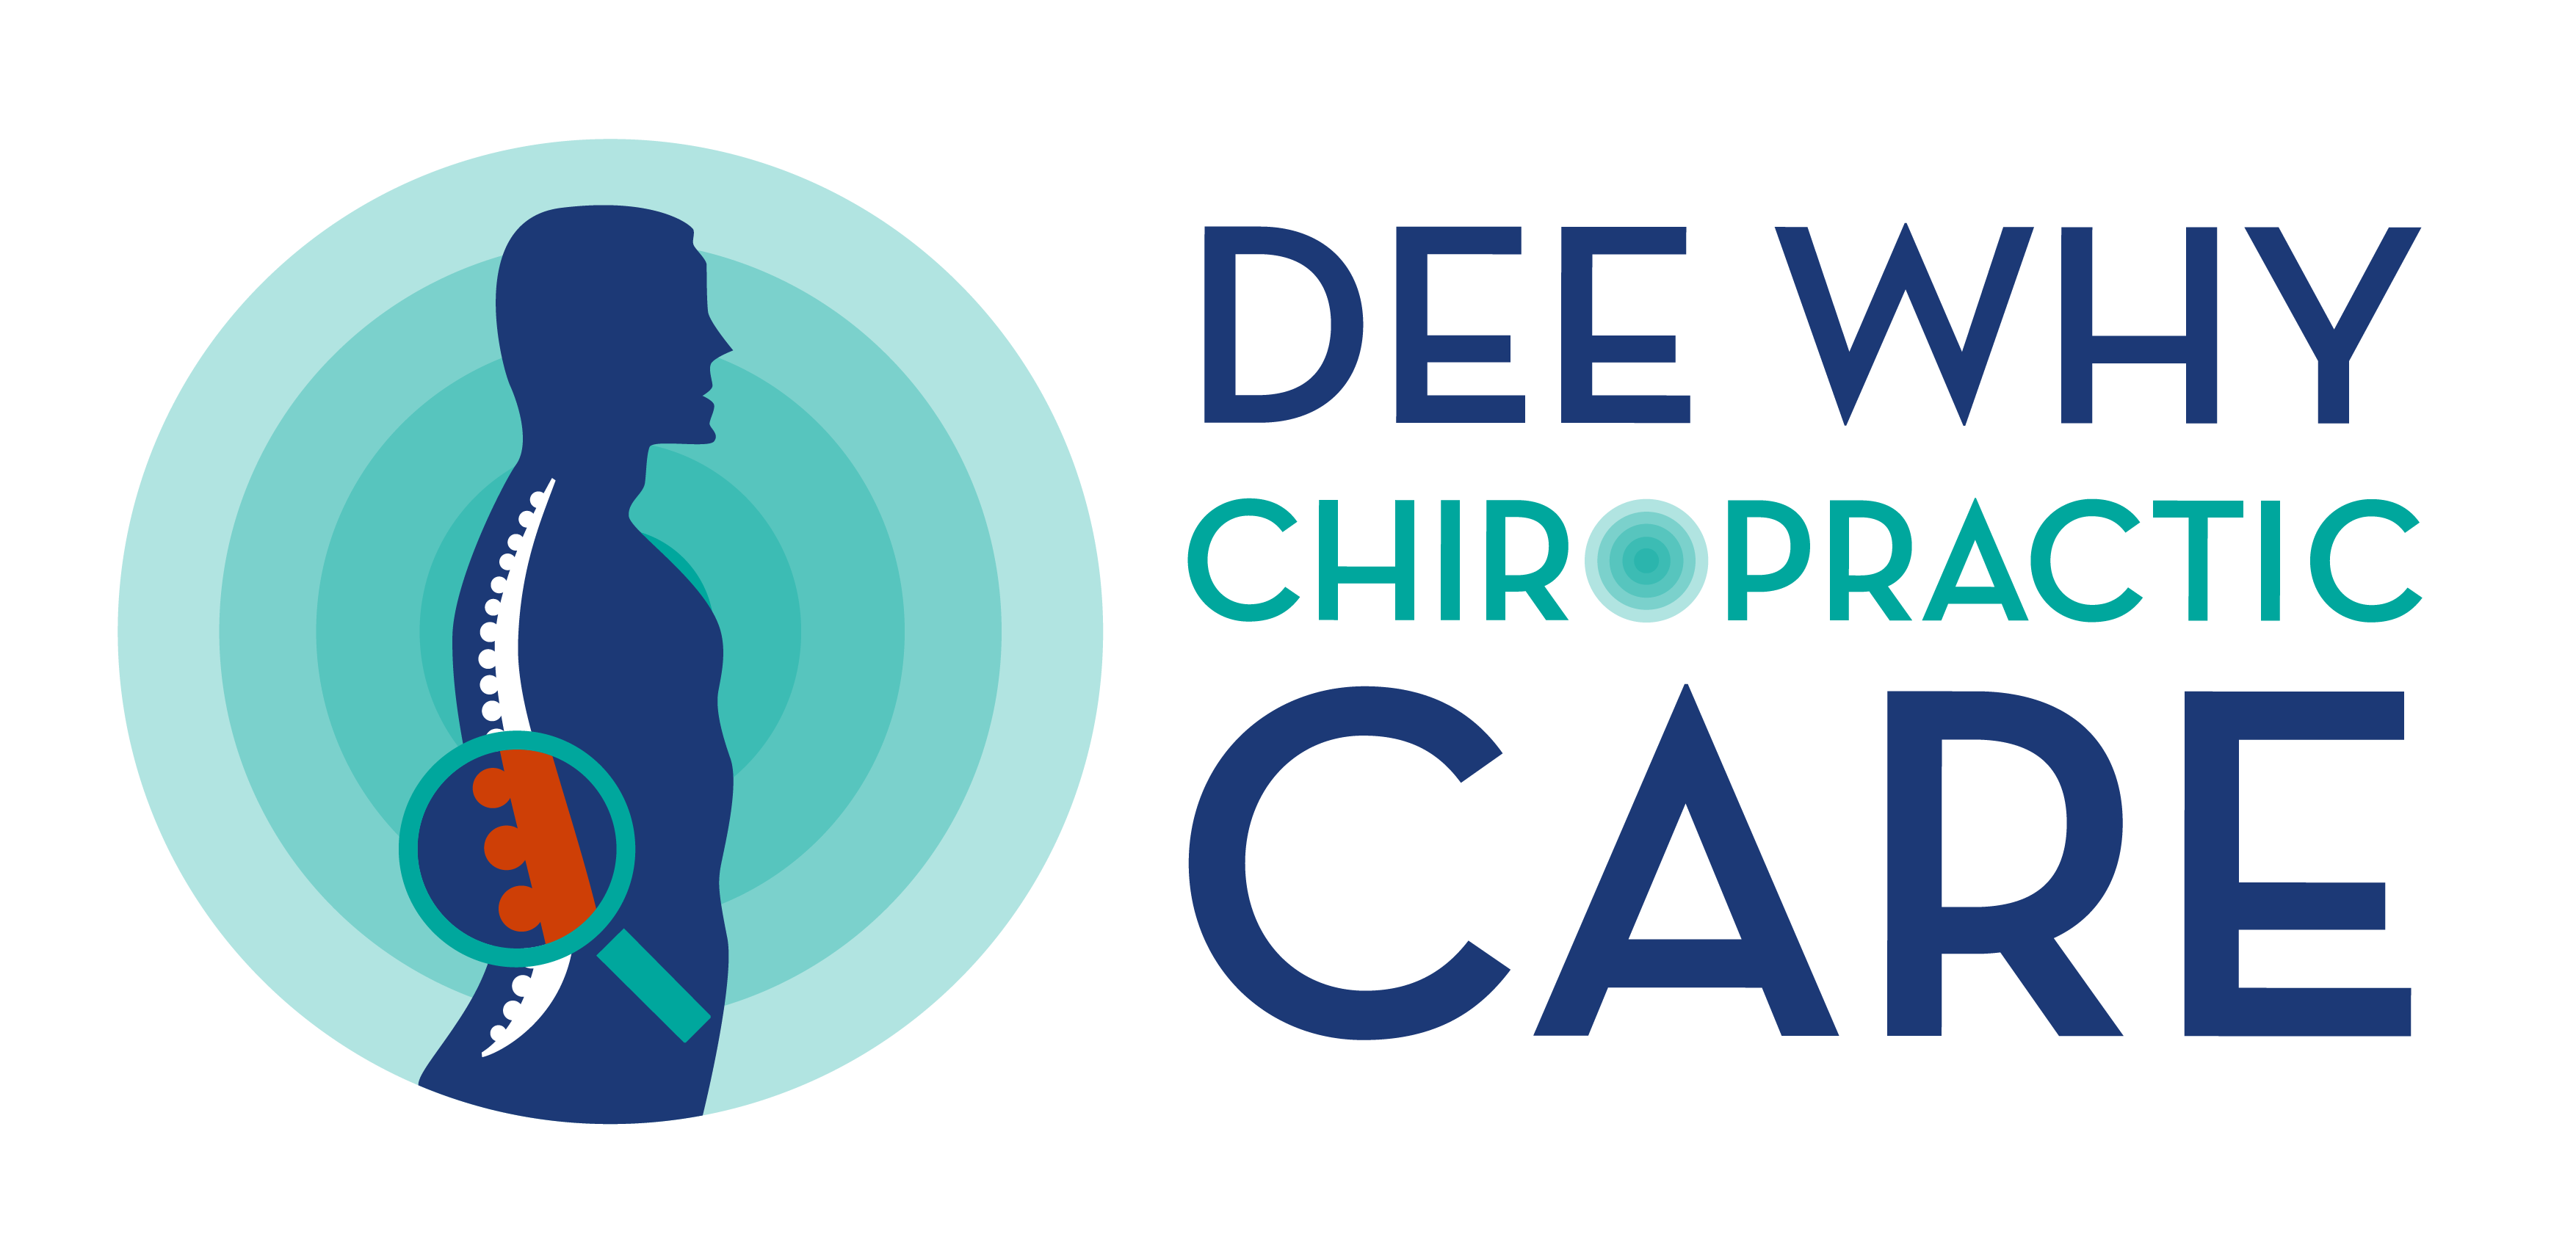 Dee why chiropractic care. Injury clipart muscular pain